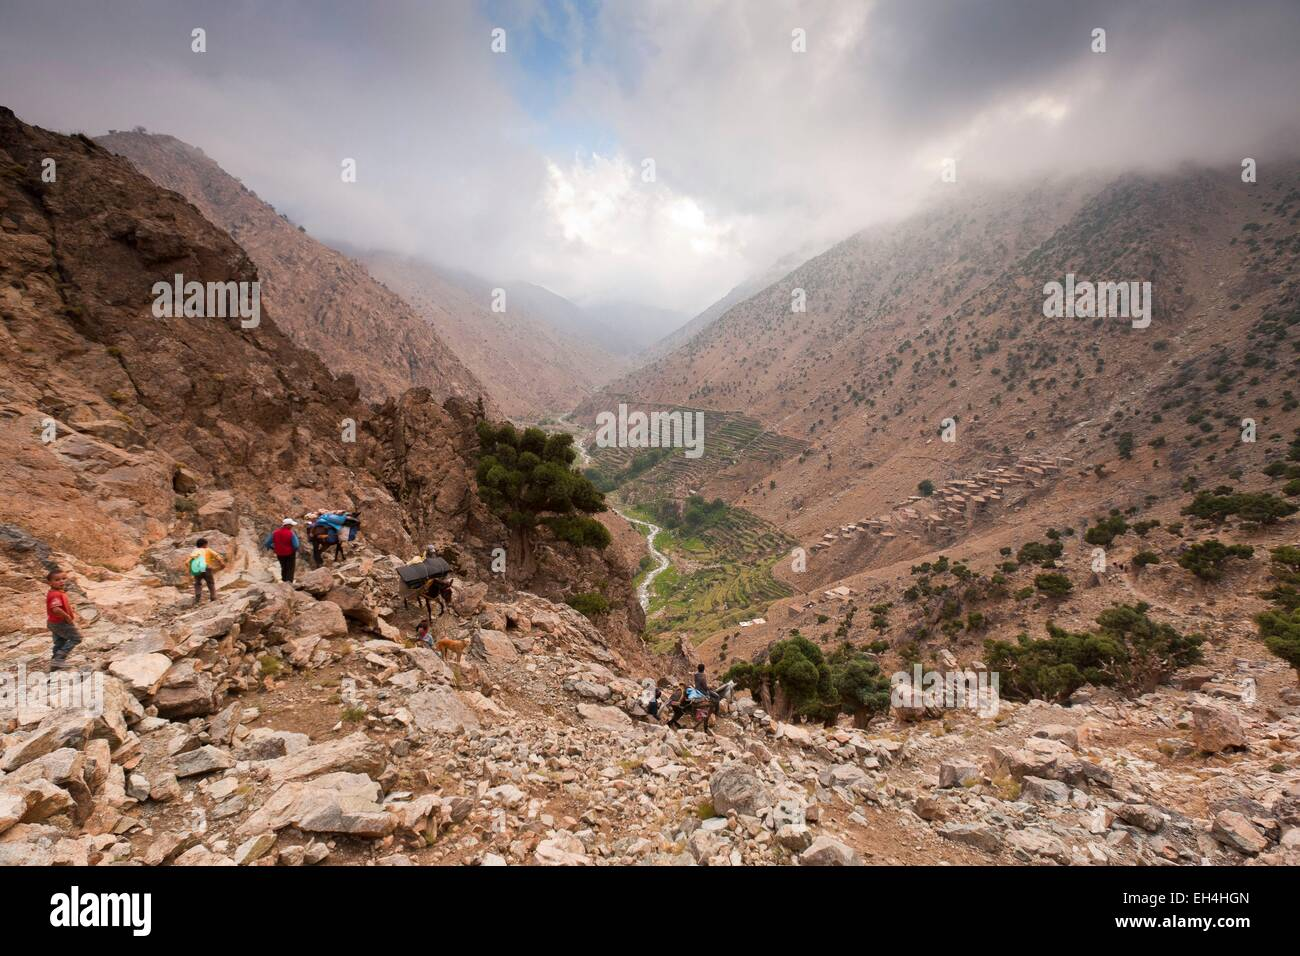 Morocco, High Atlas, Toubkal National Park, Ourika valley and village Amenzal - Stock Image